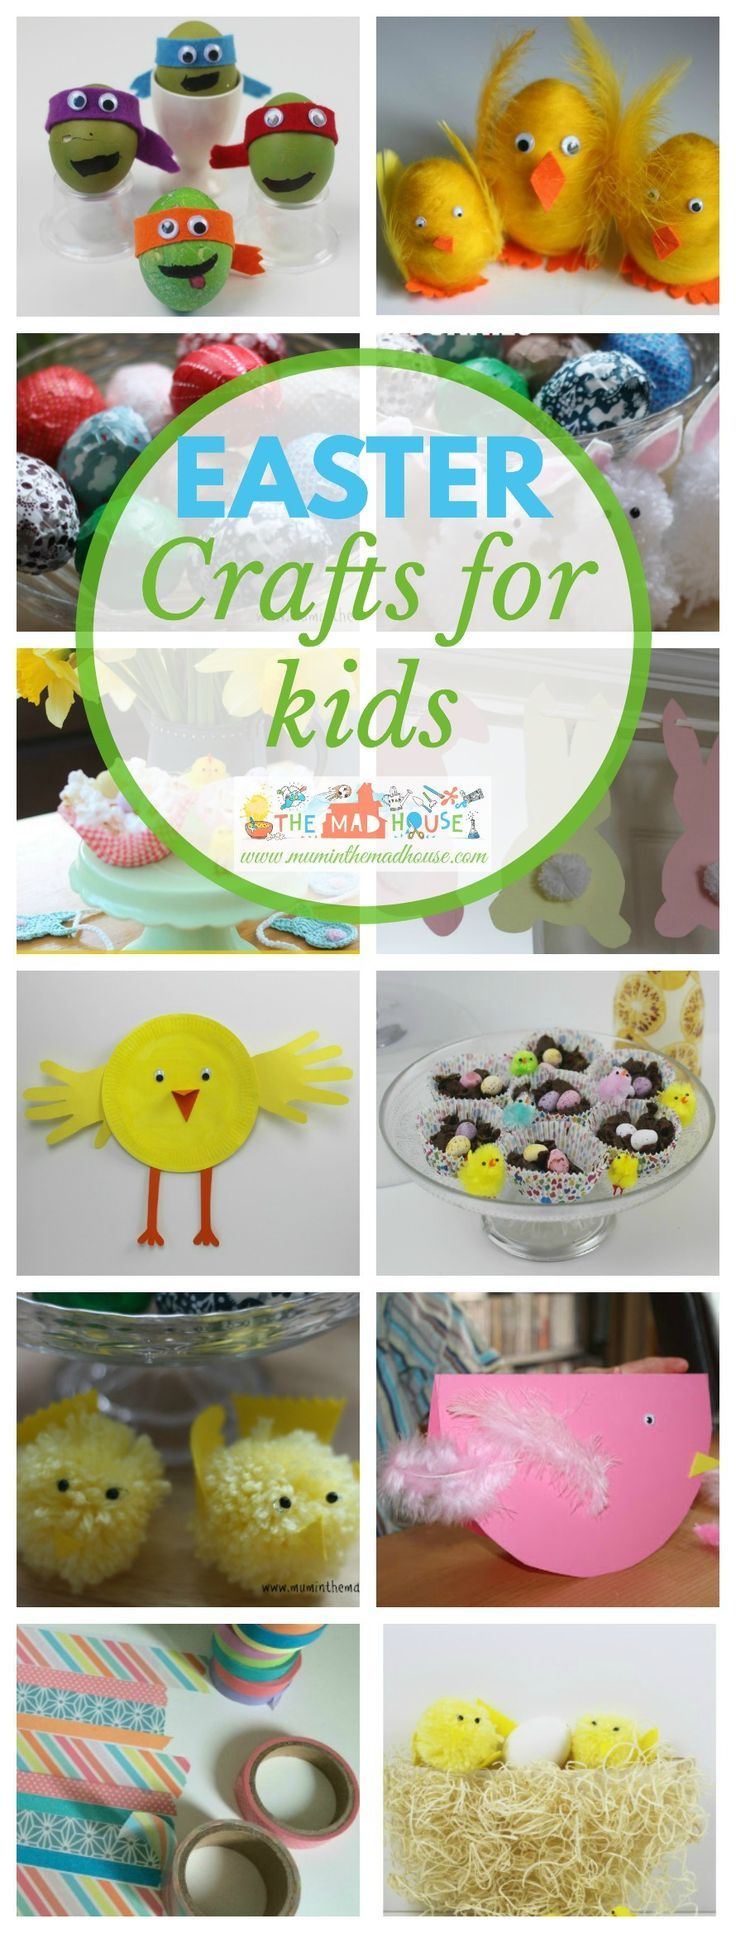 Easter Crafts, Activities and Food for Kids - Looking for Easter crafts, activities and food for families?  Well, look no further I have a complete resource of them all in one place for you, including DIY Crafts, Easter recipes, Egg Decorating, Cards and